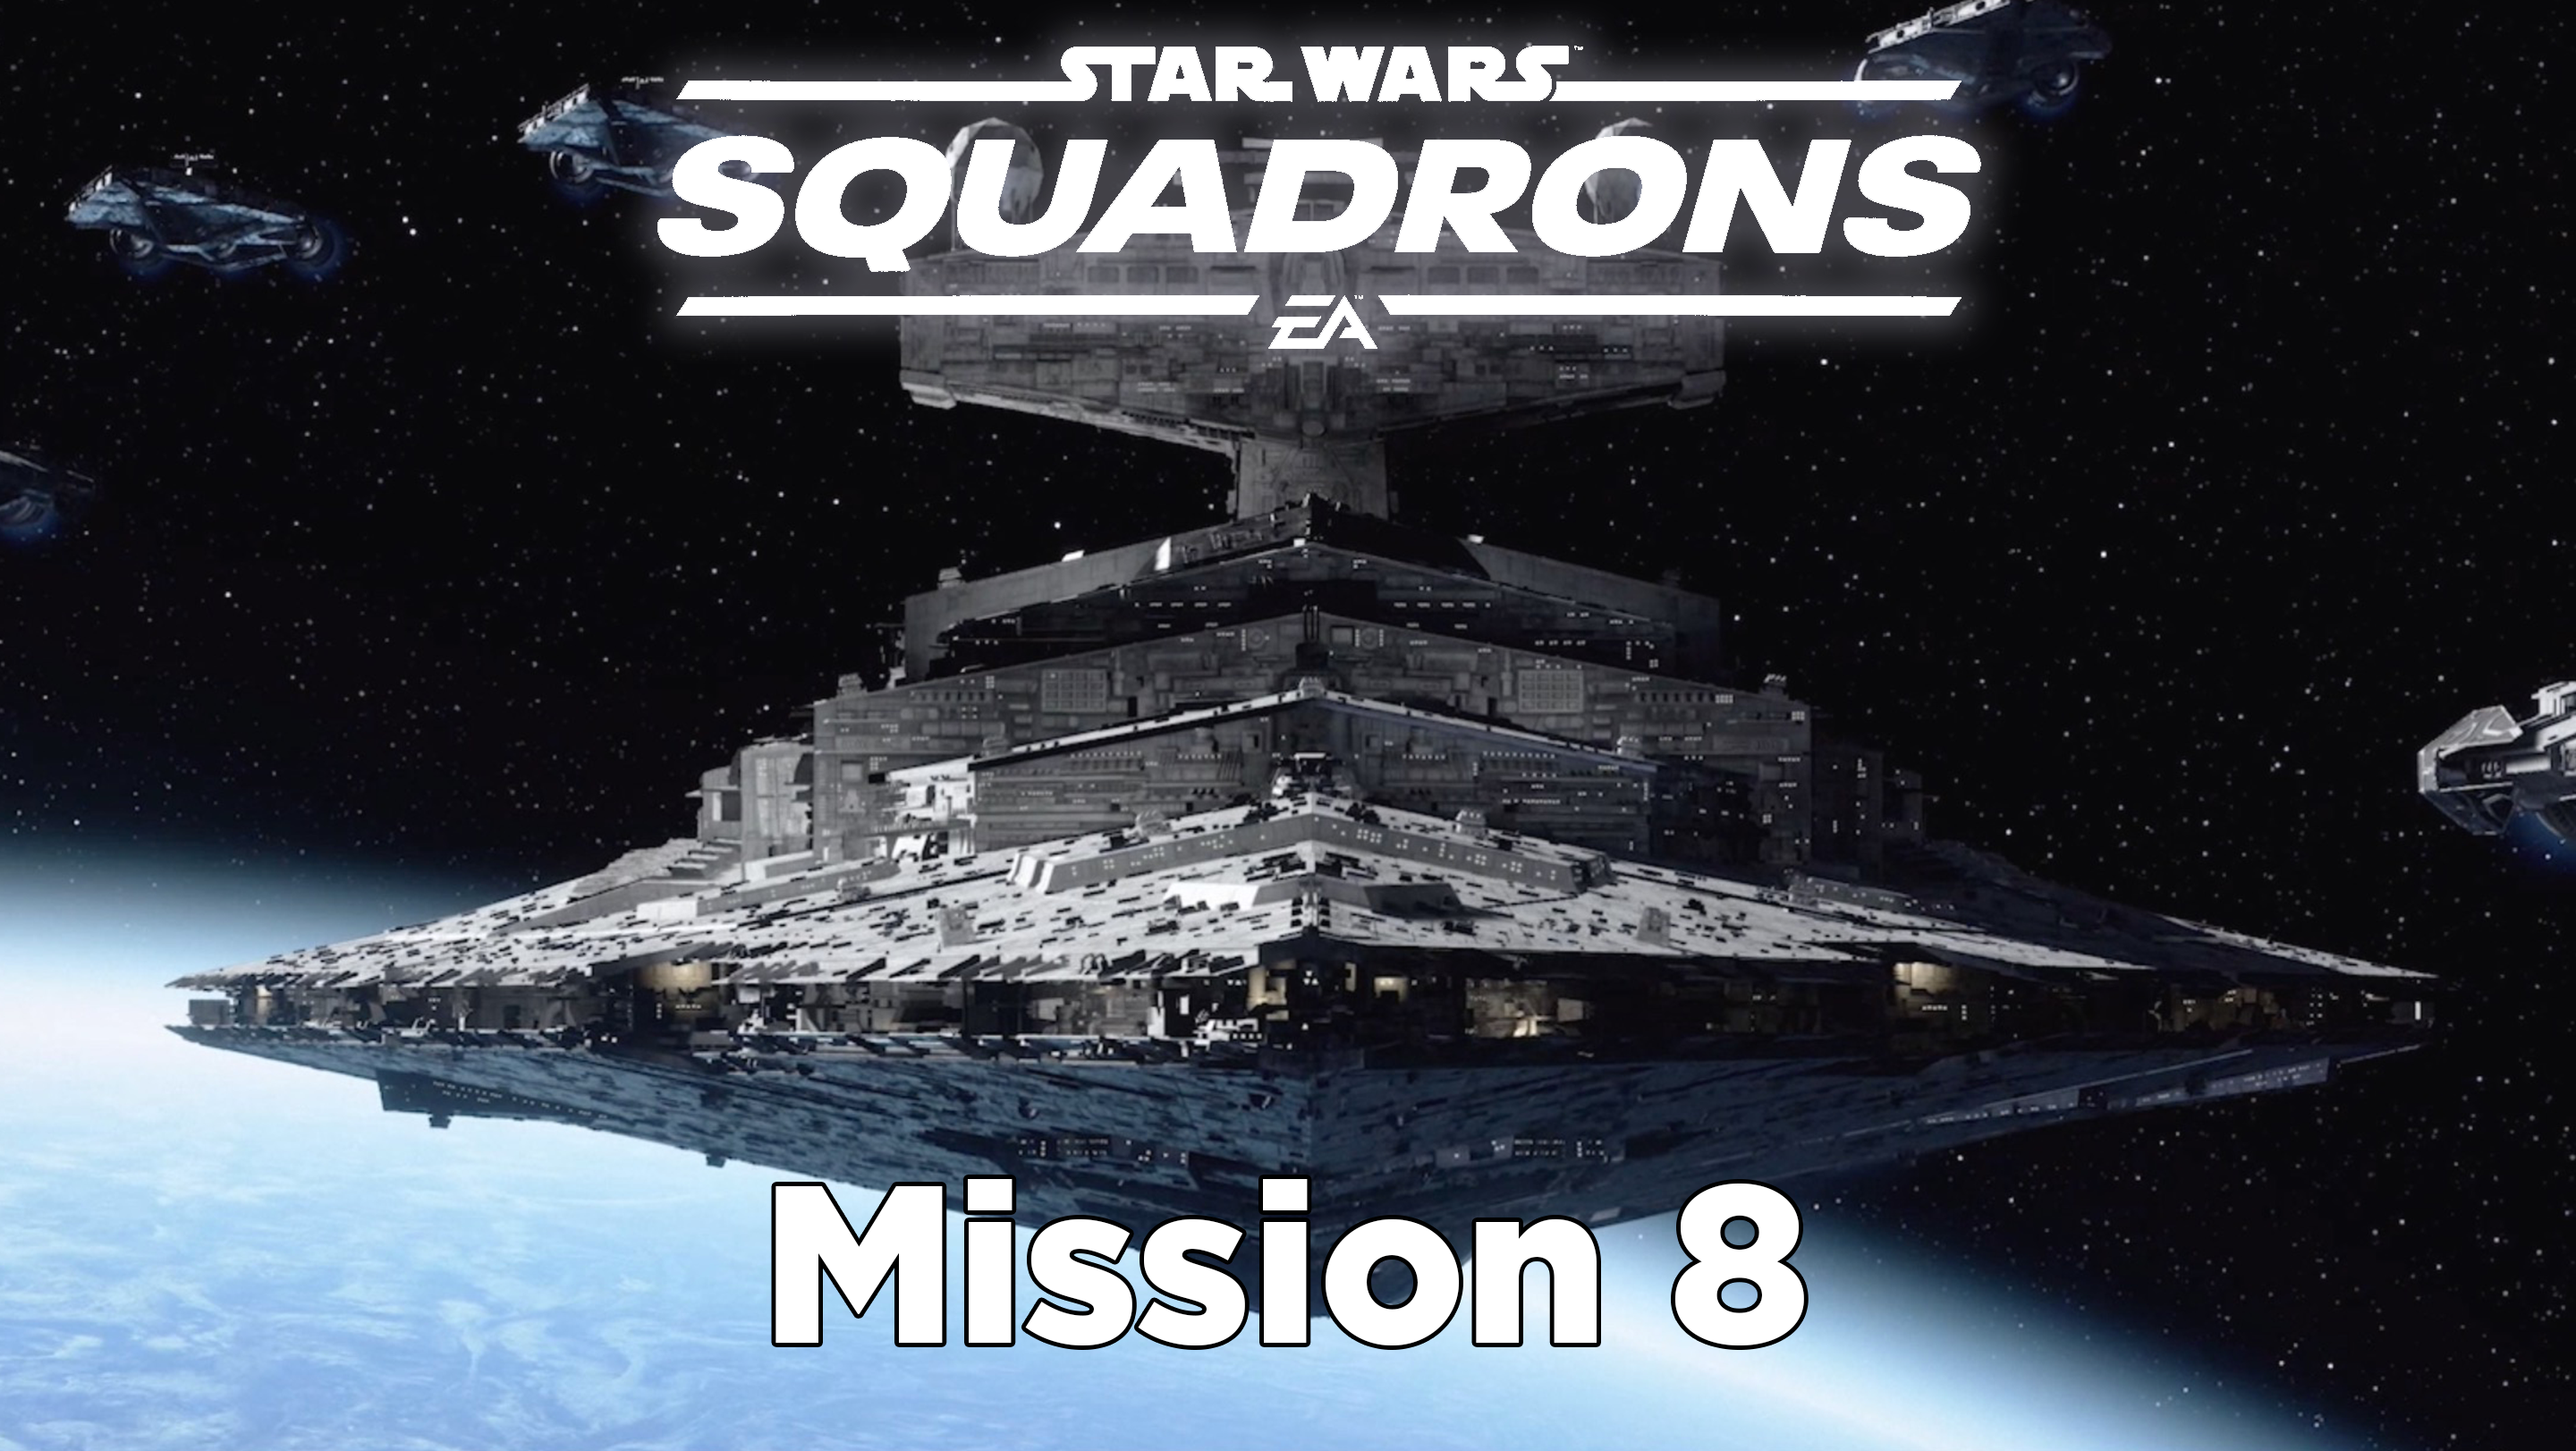 Star Wars Squadrons guide: Mission 8 – Fractured Alliance tips and walkthrough